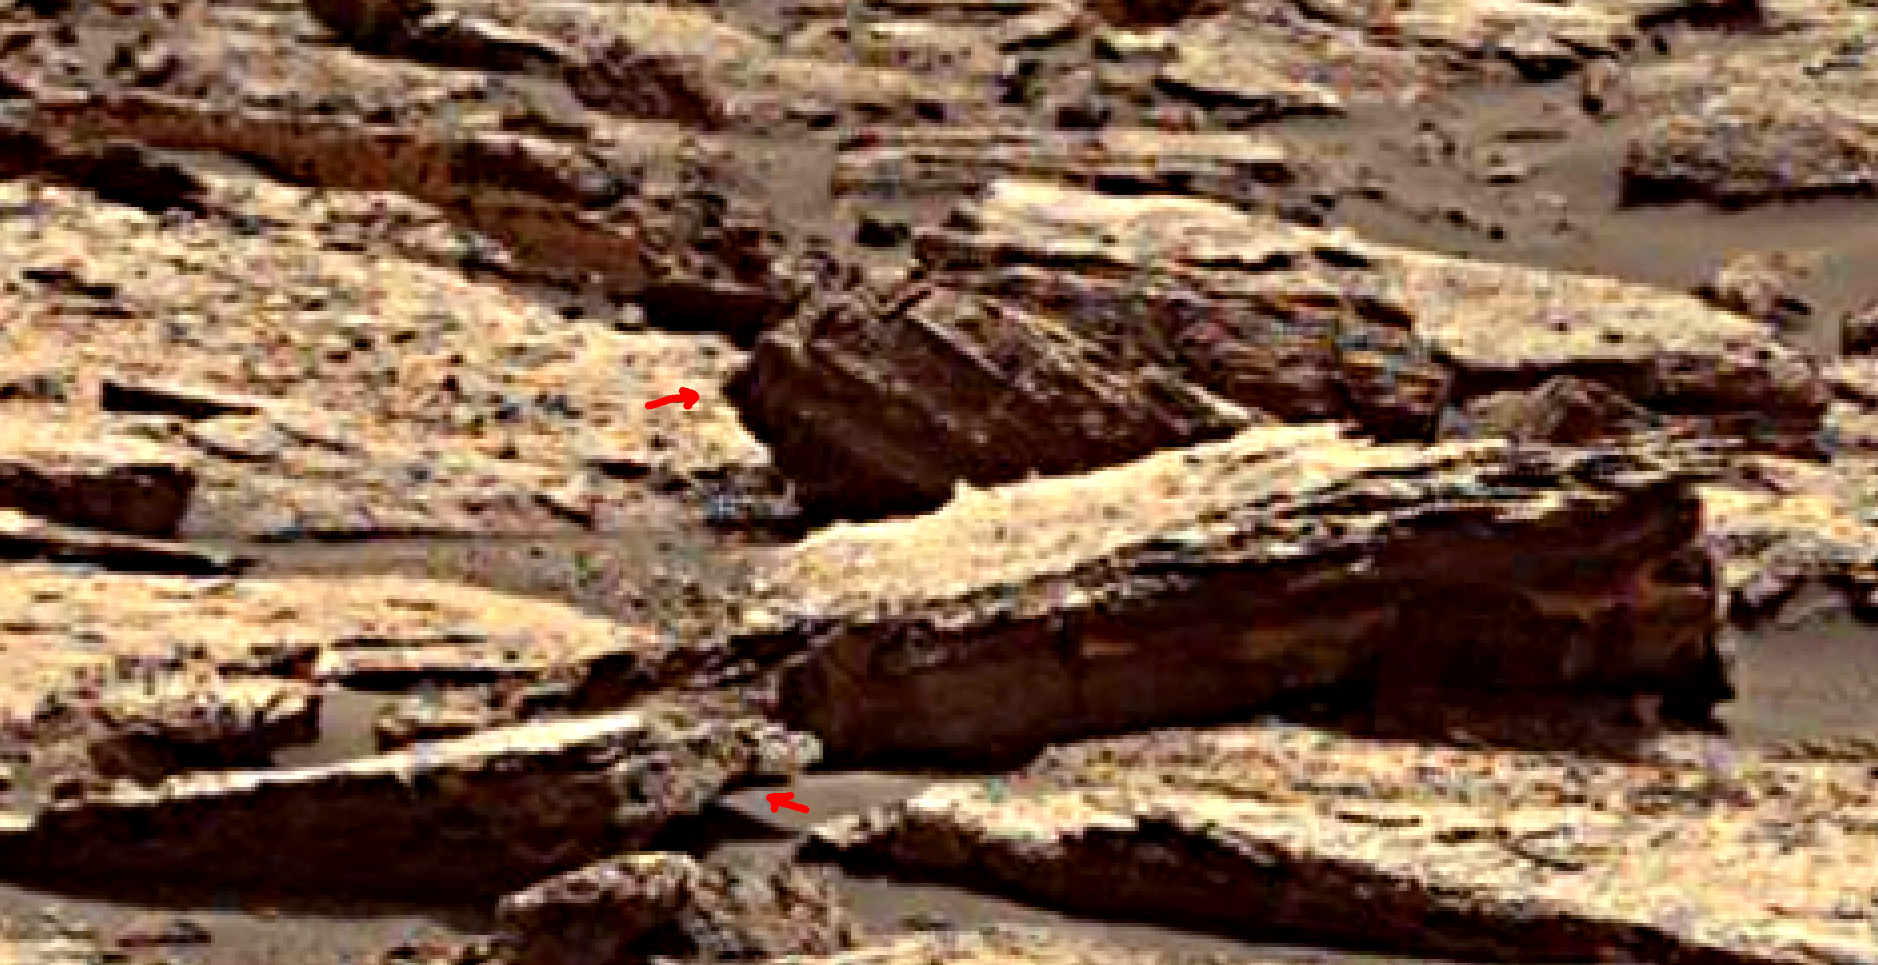 mars-sol-1489-anomaly-artifacts-2-was-life-on-mars